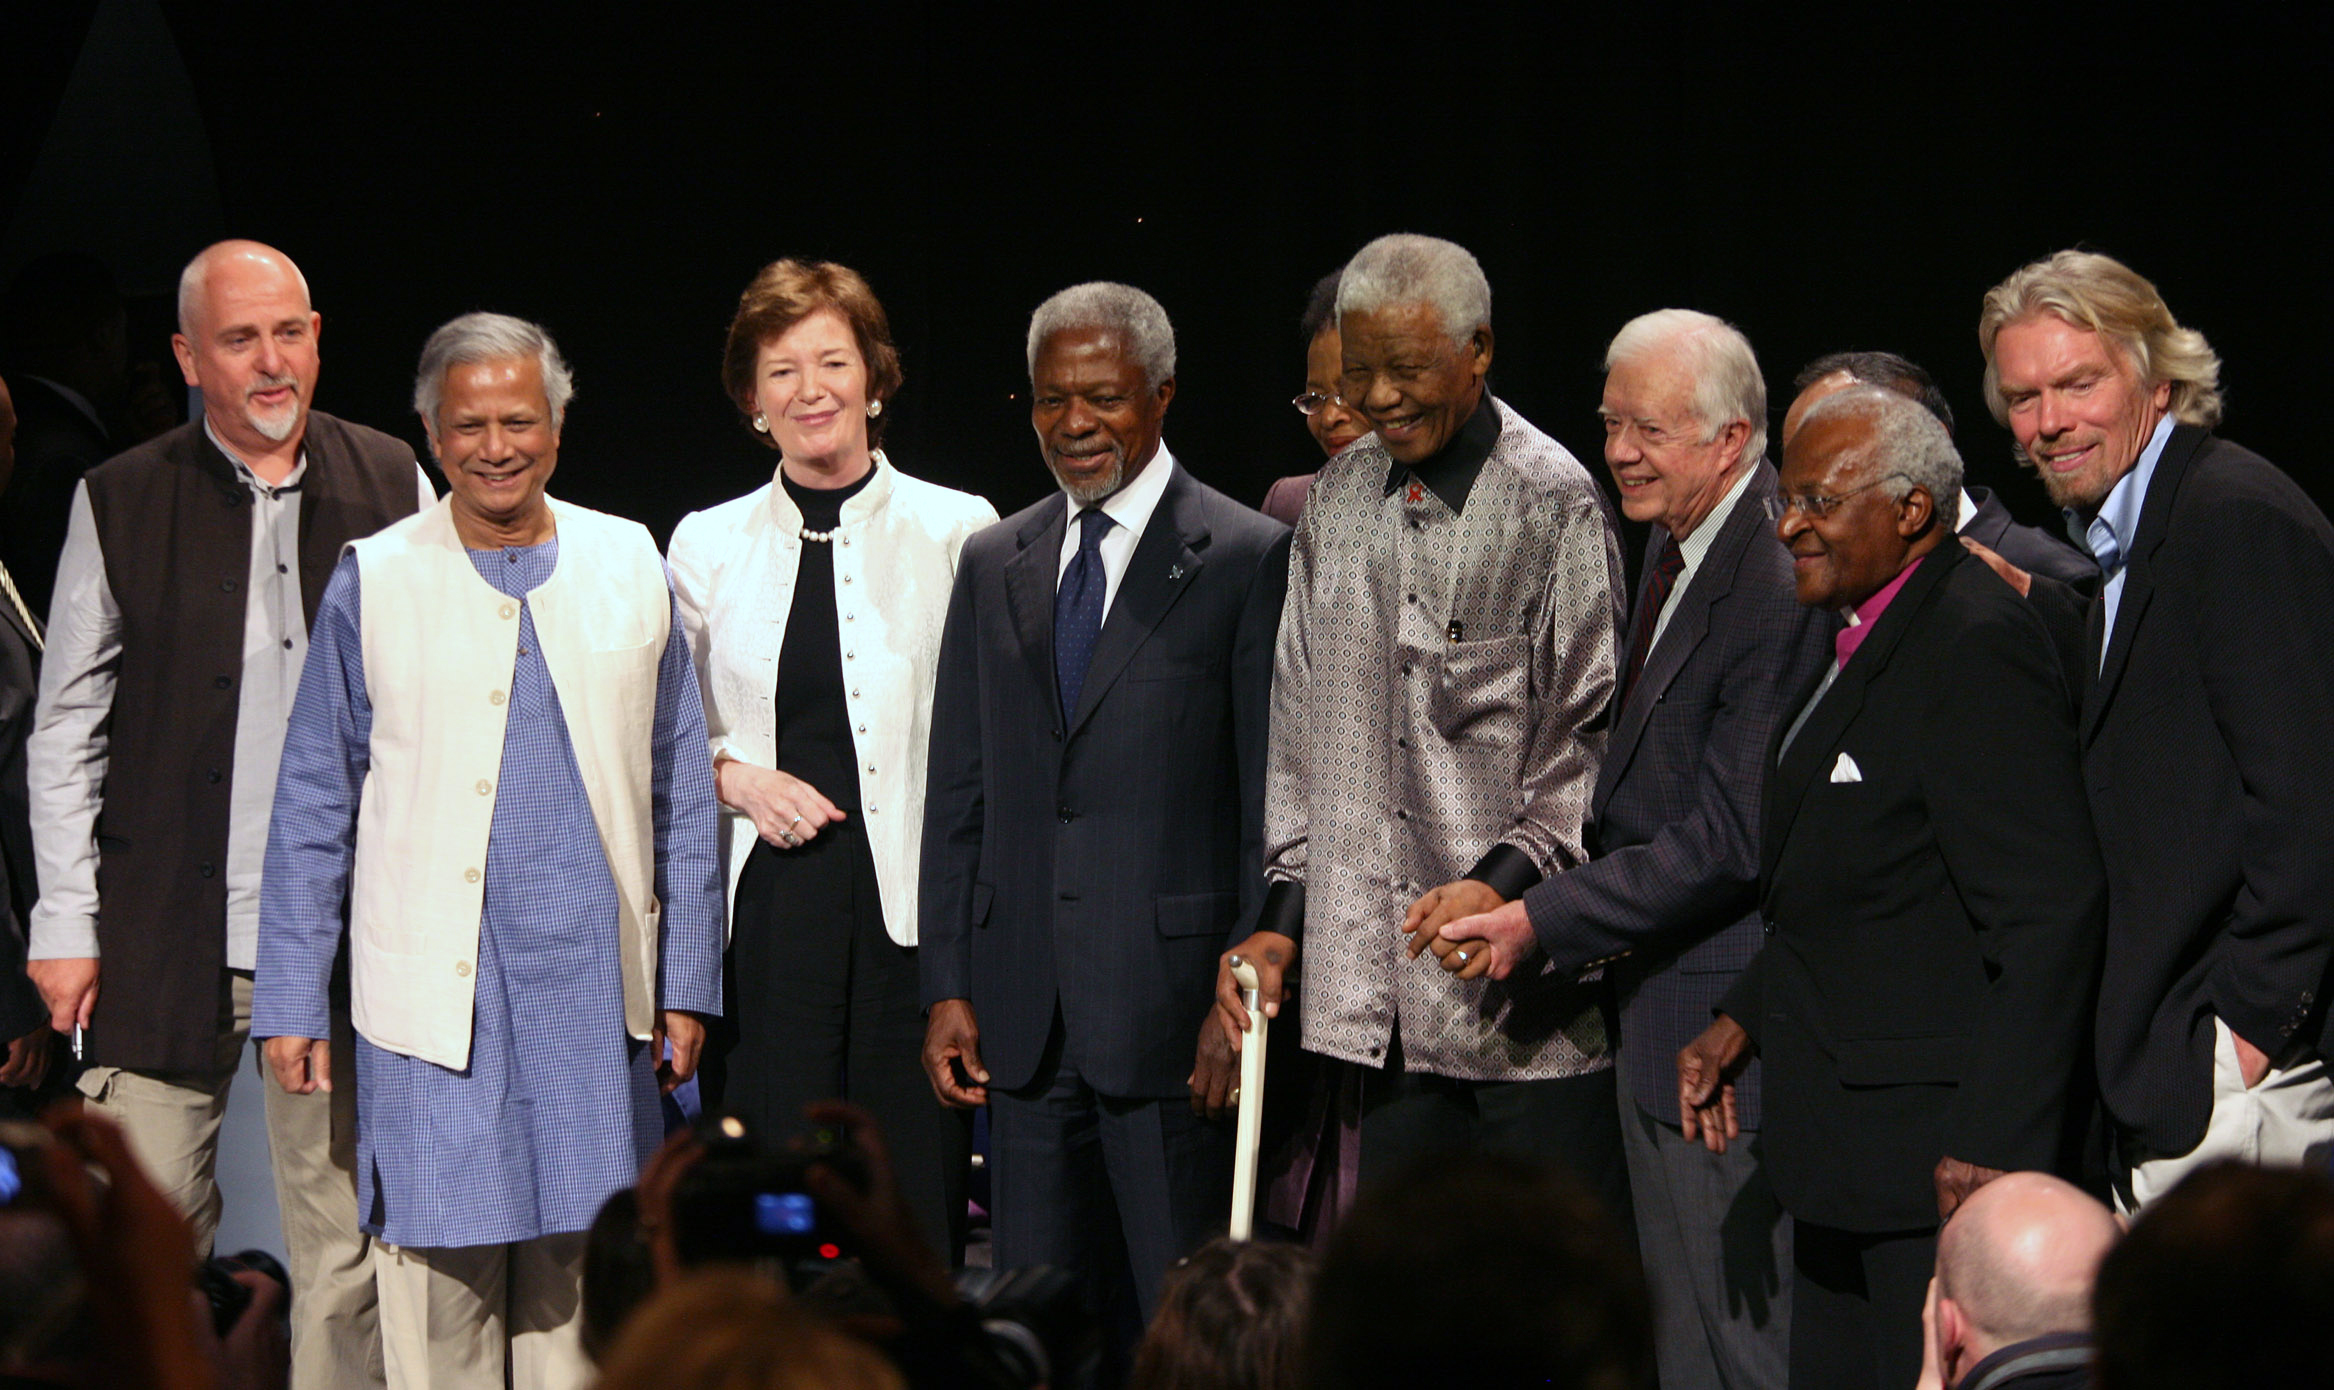 (L-R) Musician and activist Peter Gabriel, Professor Muhammad Yunus, former Pesident of Ireland Mary Robinson, former Secretary General of the U.N. Kofi Annan, former President of South Africa Nelson Mandela, former U.S. President Jimmy Carter, Archbishop Desmont Tutu and entrepreneur Richard Branson pose for photographers during a ceremony marking the 89th birthday of Mandela in Johannesburg July 18 2007. Mandela marked his birthday on Wednesday by launching an international group of elder statesmen, including fellow Nobel peace laureates Desmond Tutu and Jimmy Carter, to tackle the world's problems. REUTERS/Siphiwe Sibeko